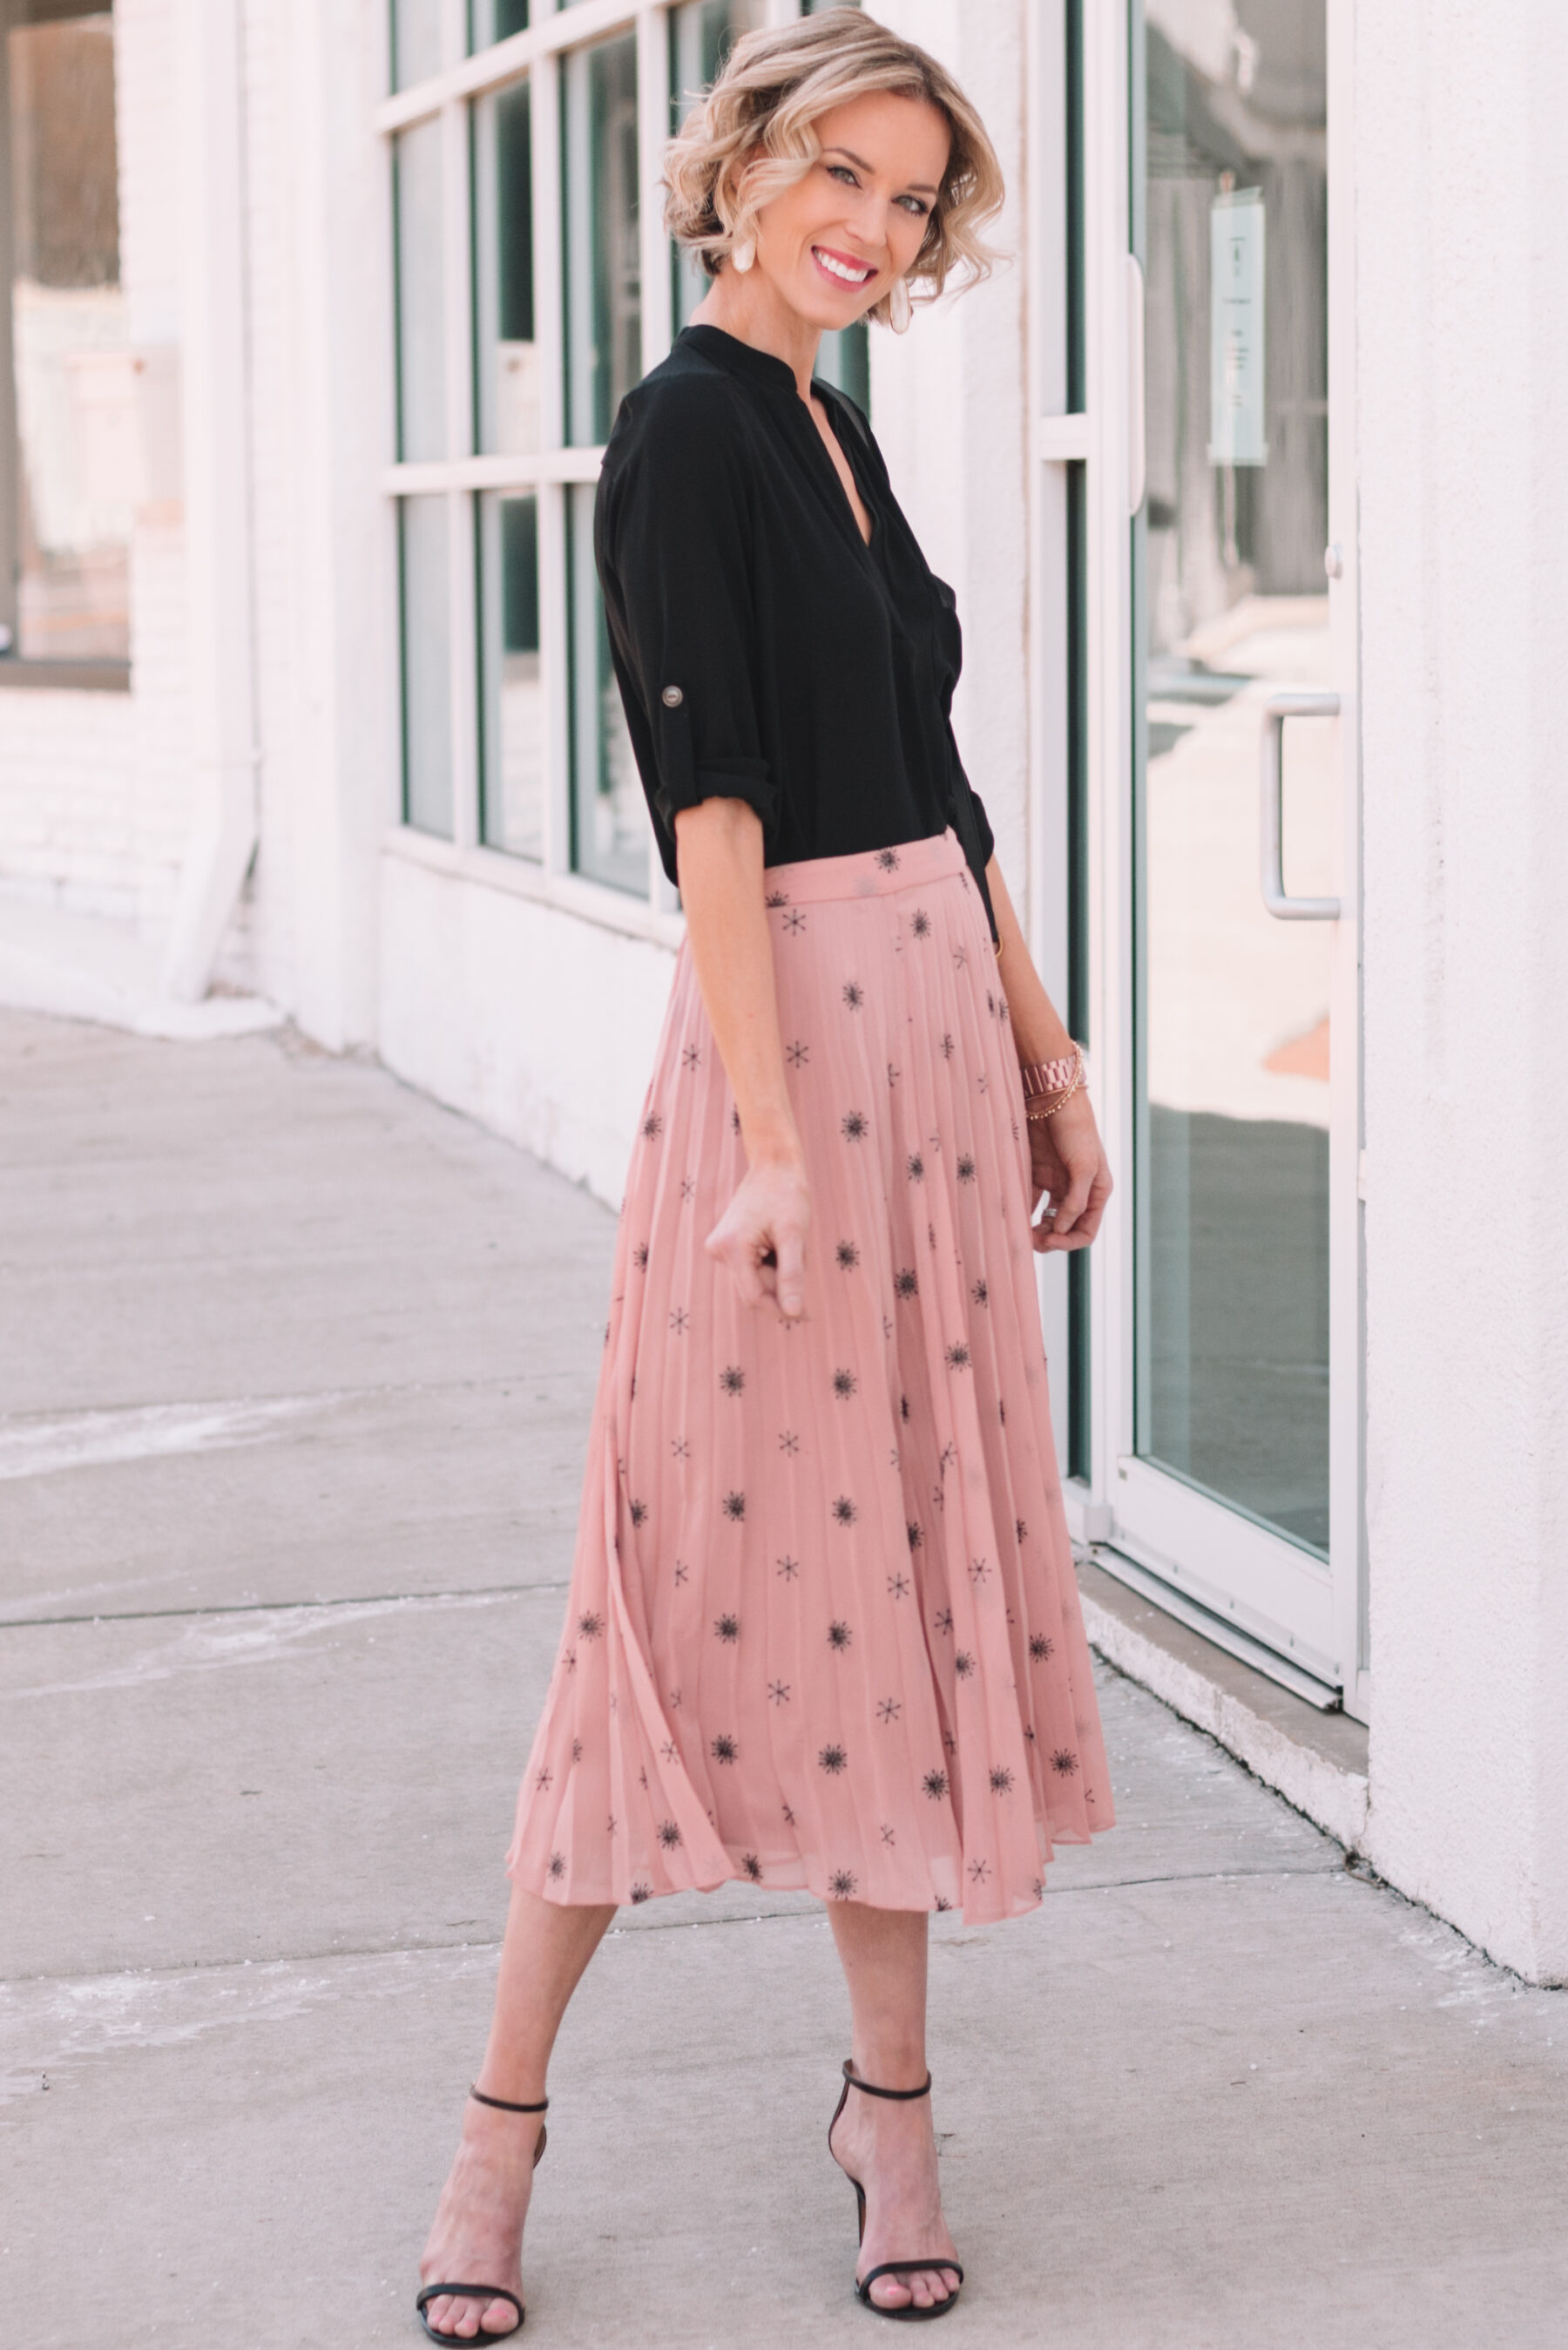 ec34478e04 ... beautiful midi skirt with heels and blouse for spring how to style ...